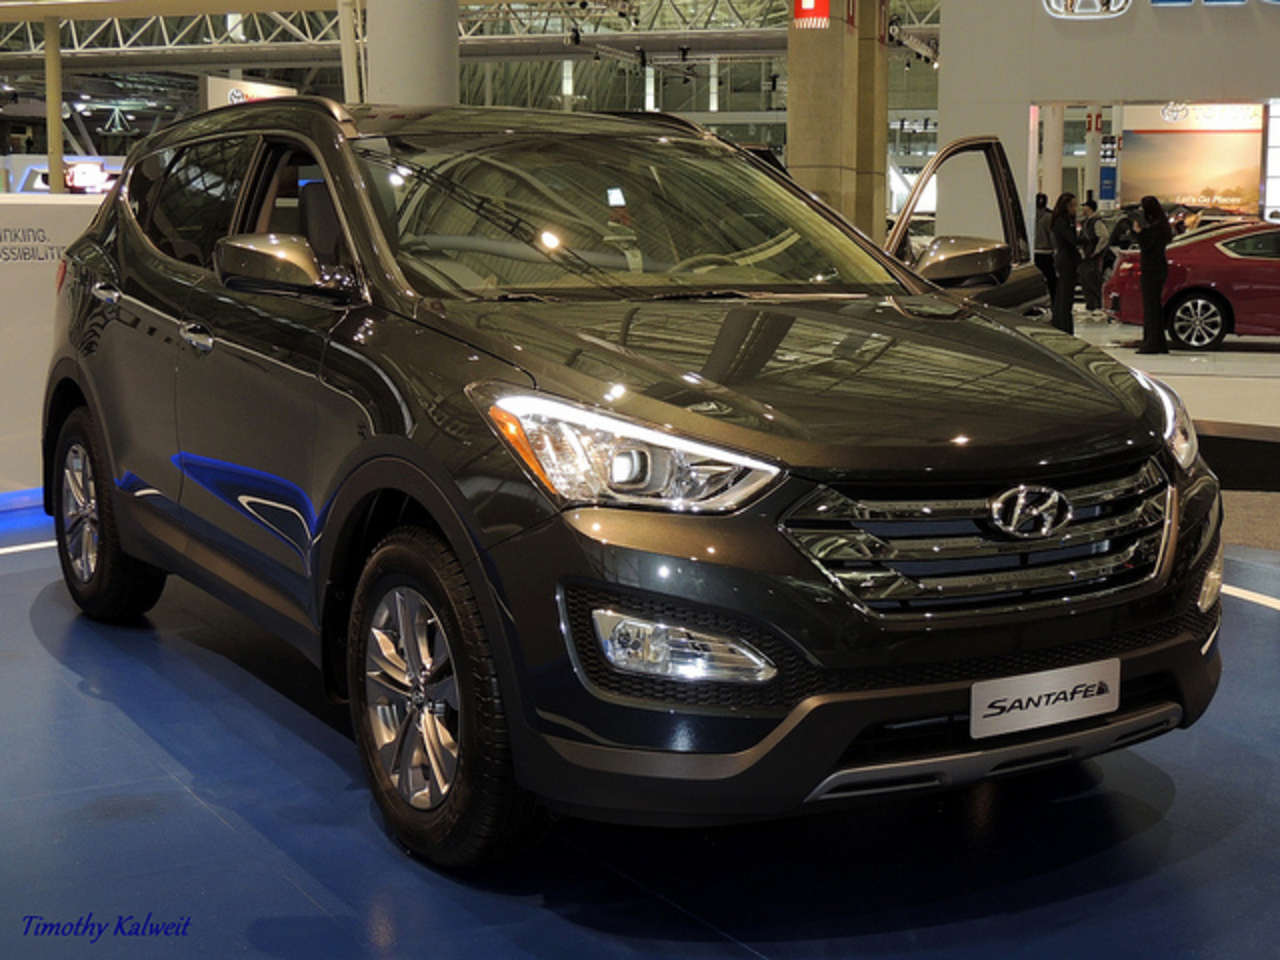 2013 Hyundai Santa Fe | Flickr - Photo Sharing!